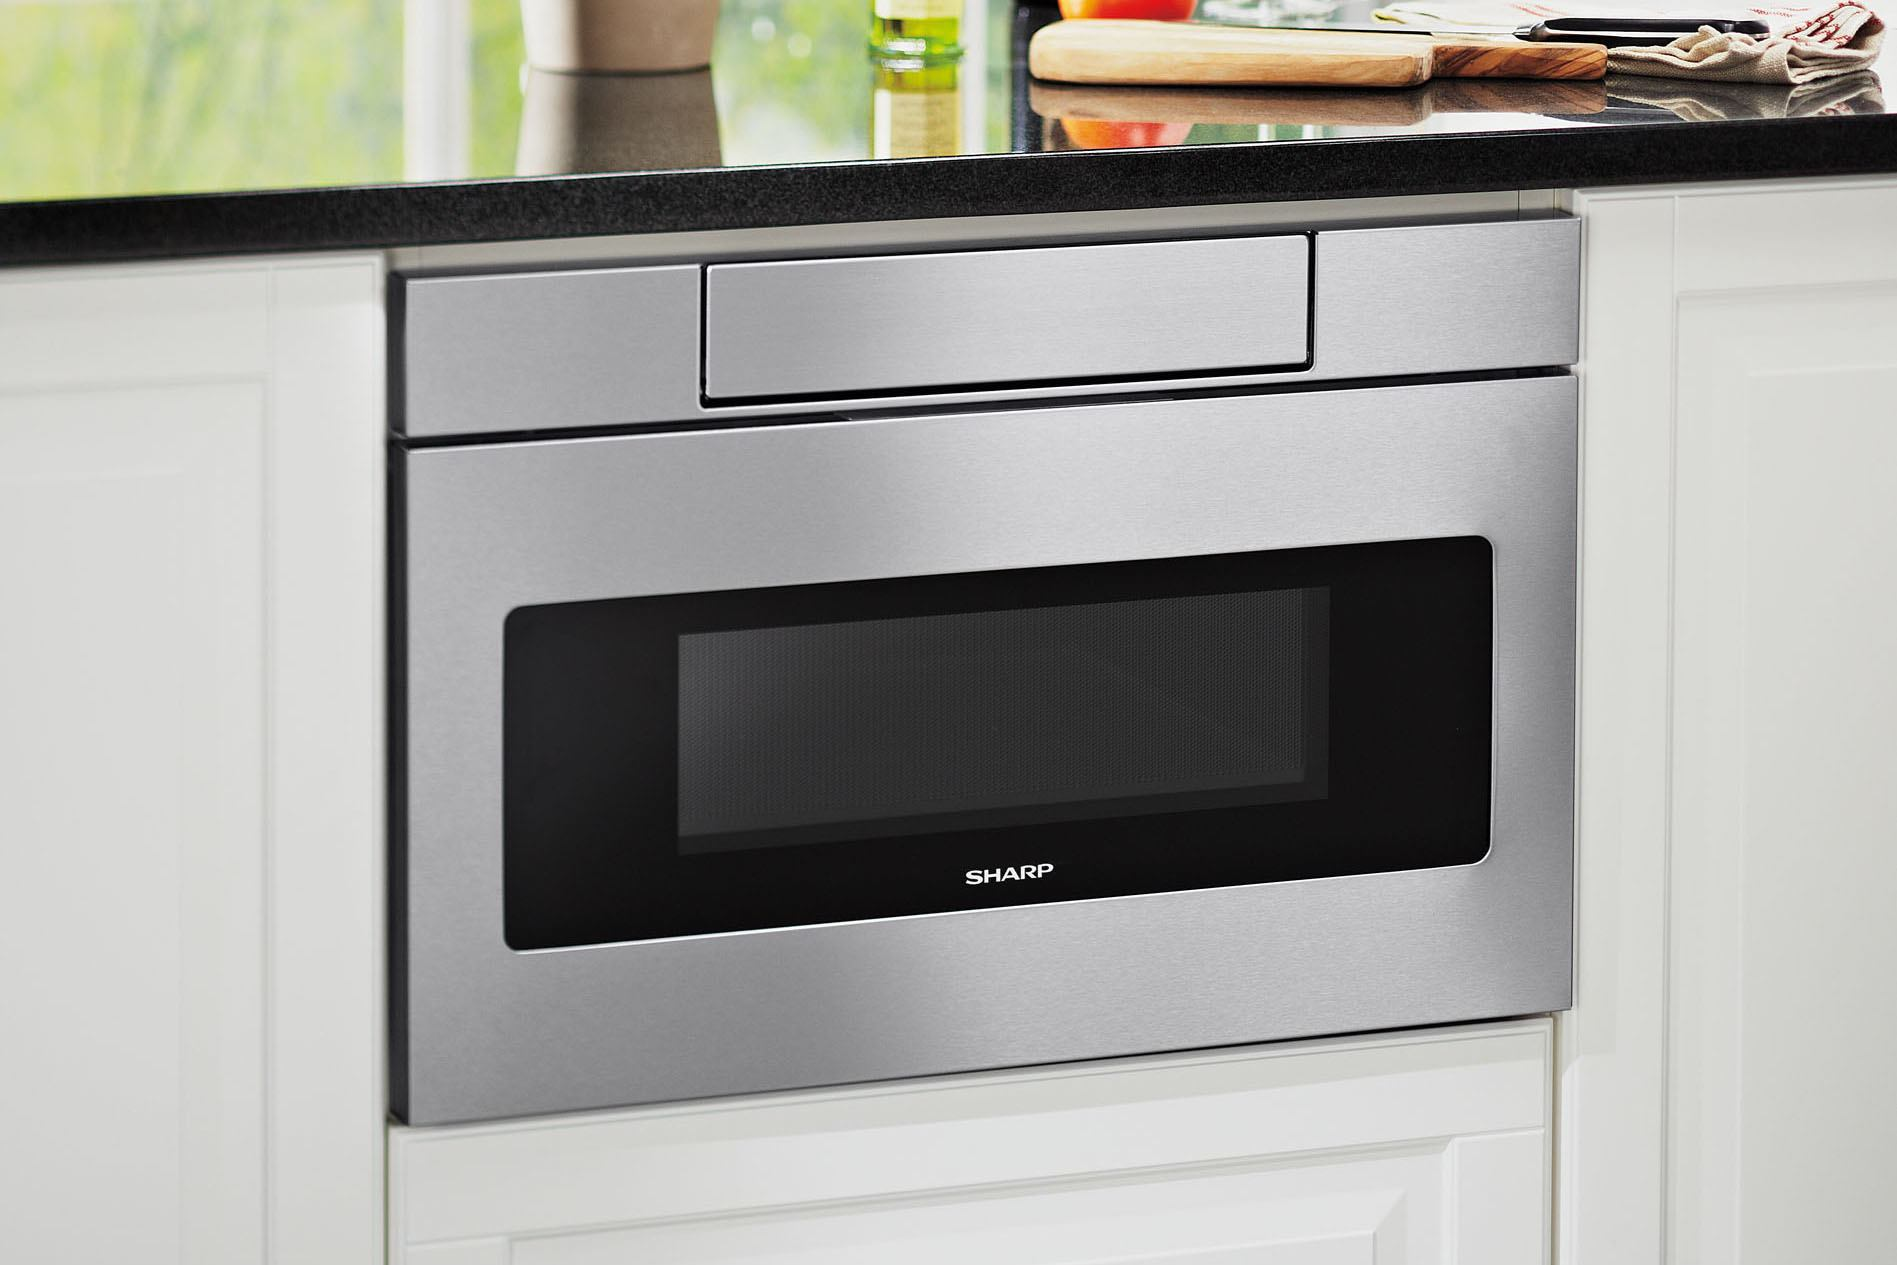 Sharp Updates Its Microwave Drawer For Universal Design | JLC Online |  Appliances, Universal Design, Sharp